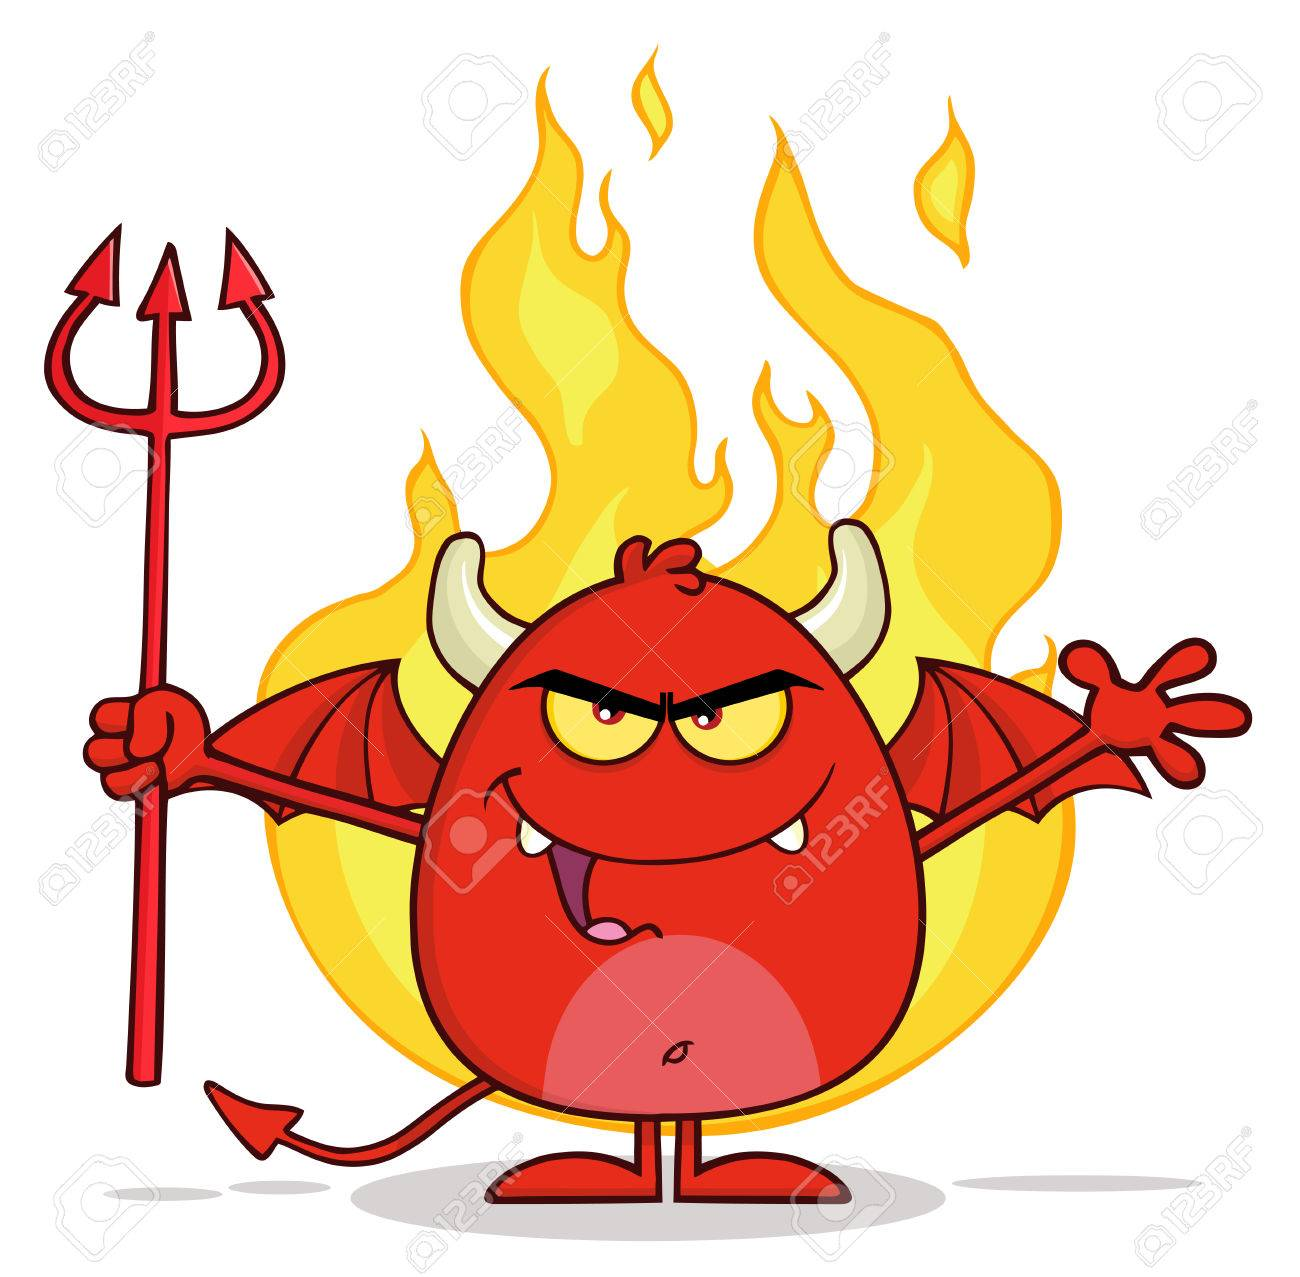 Angry Red Devil Character Holding A Pitchfork Over Flames - 46997162